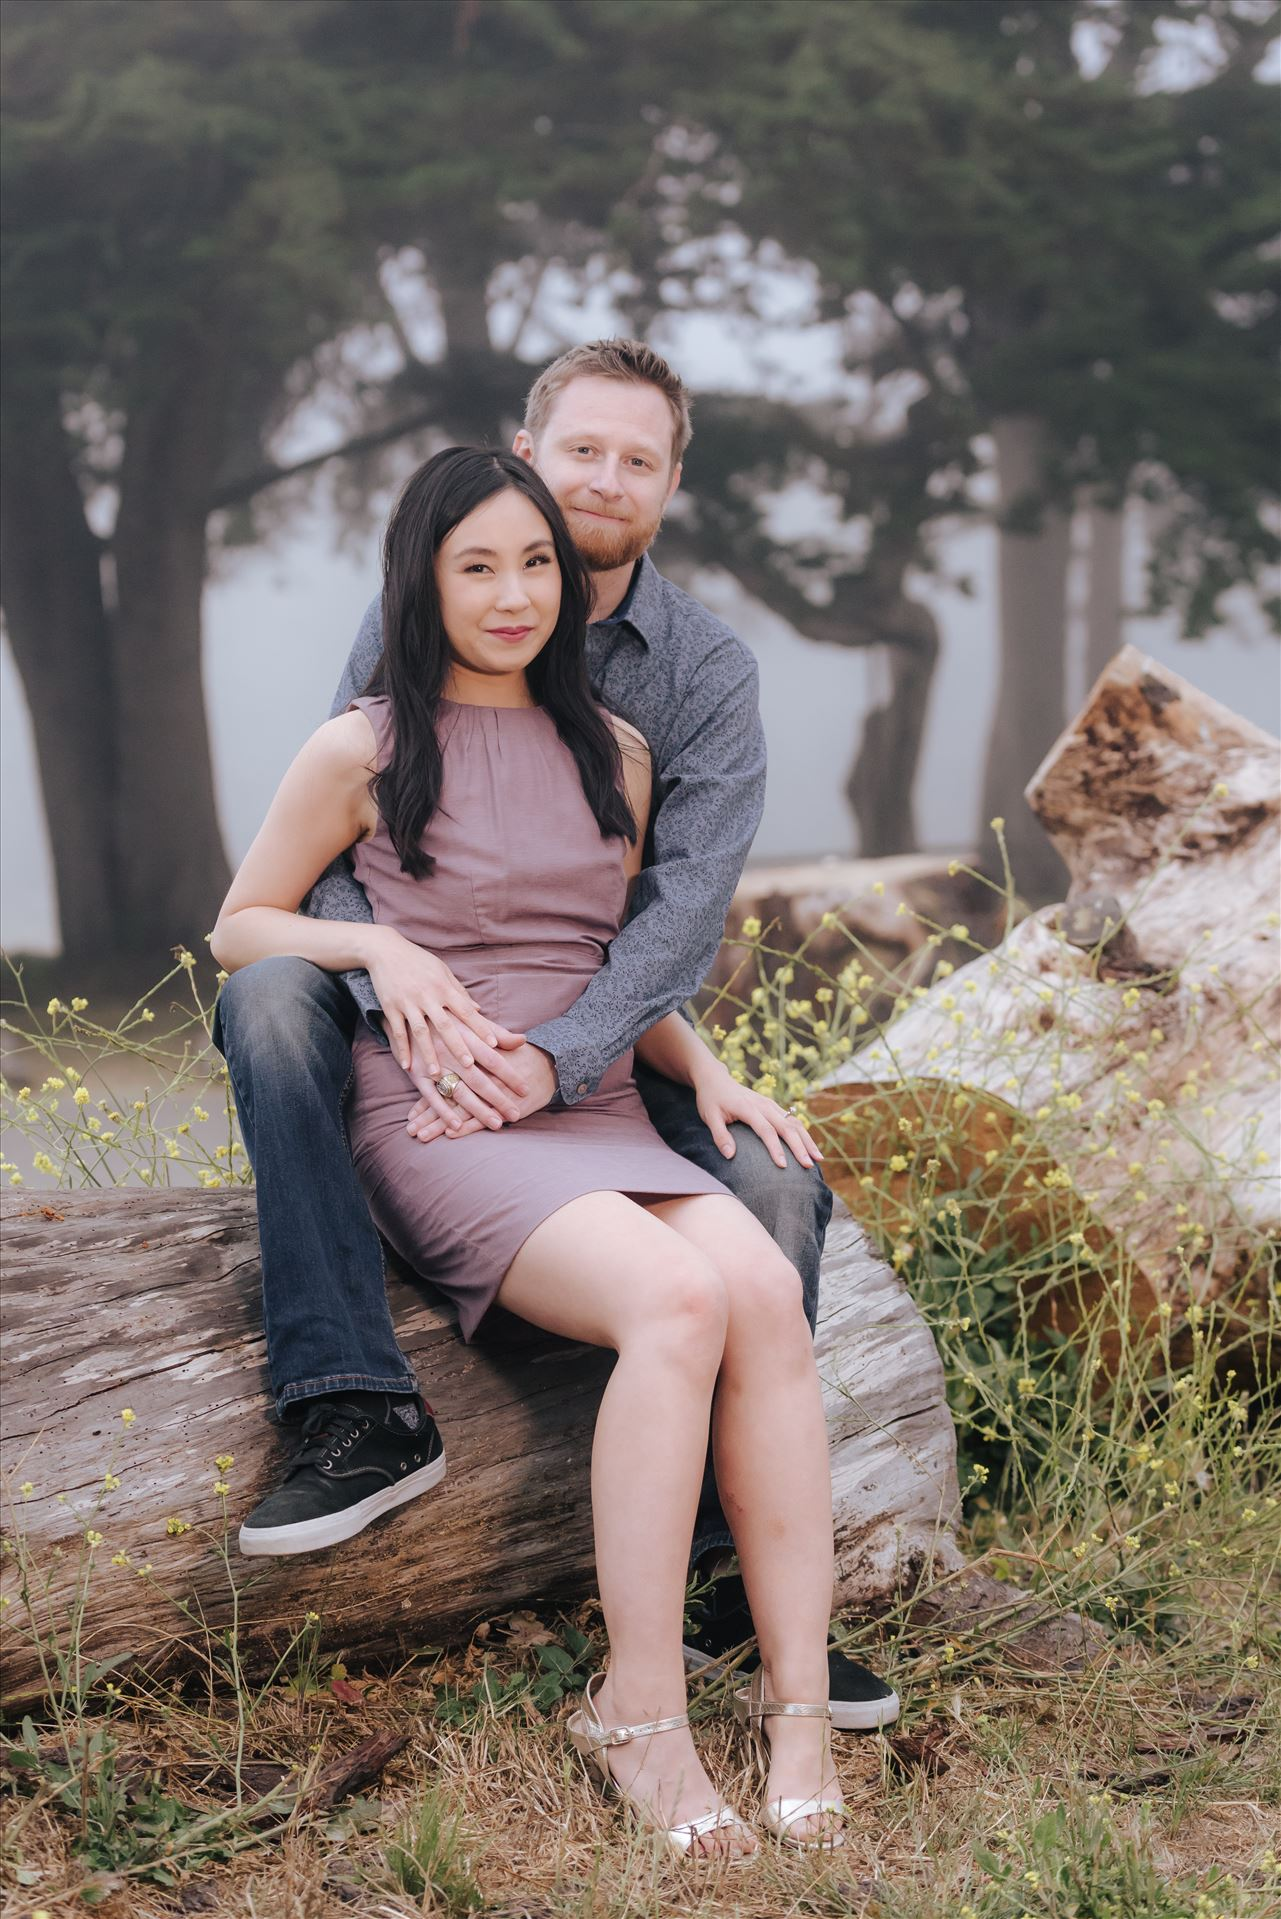 Carmen and Josh 44 - Montana de Oro Spooners Cove Engagement Photography Los Osos California.  Classic Chic Bride and Groom by Sarah Williams